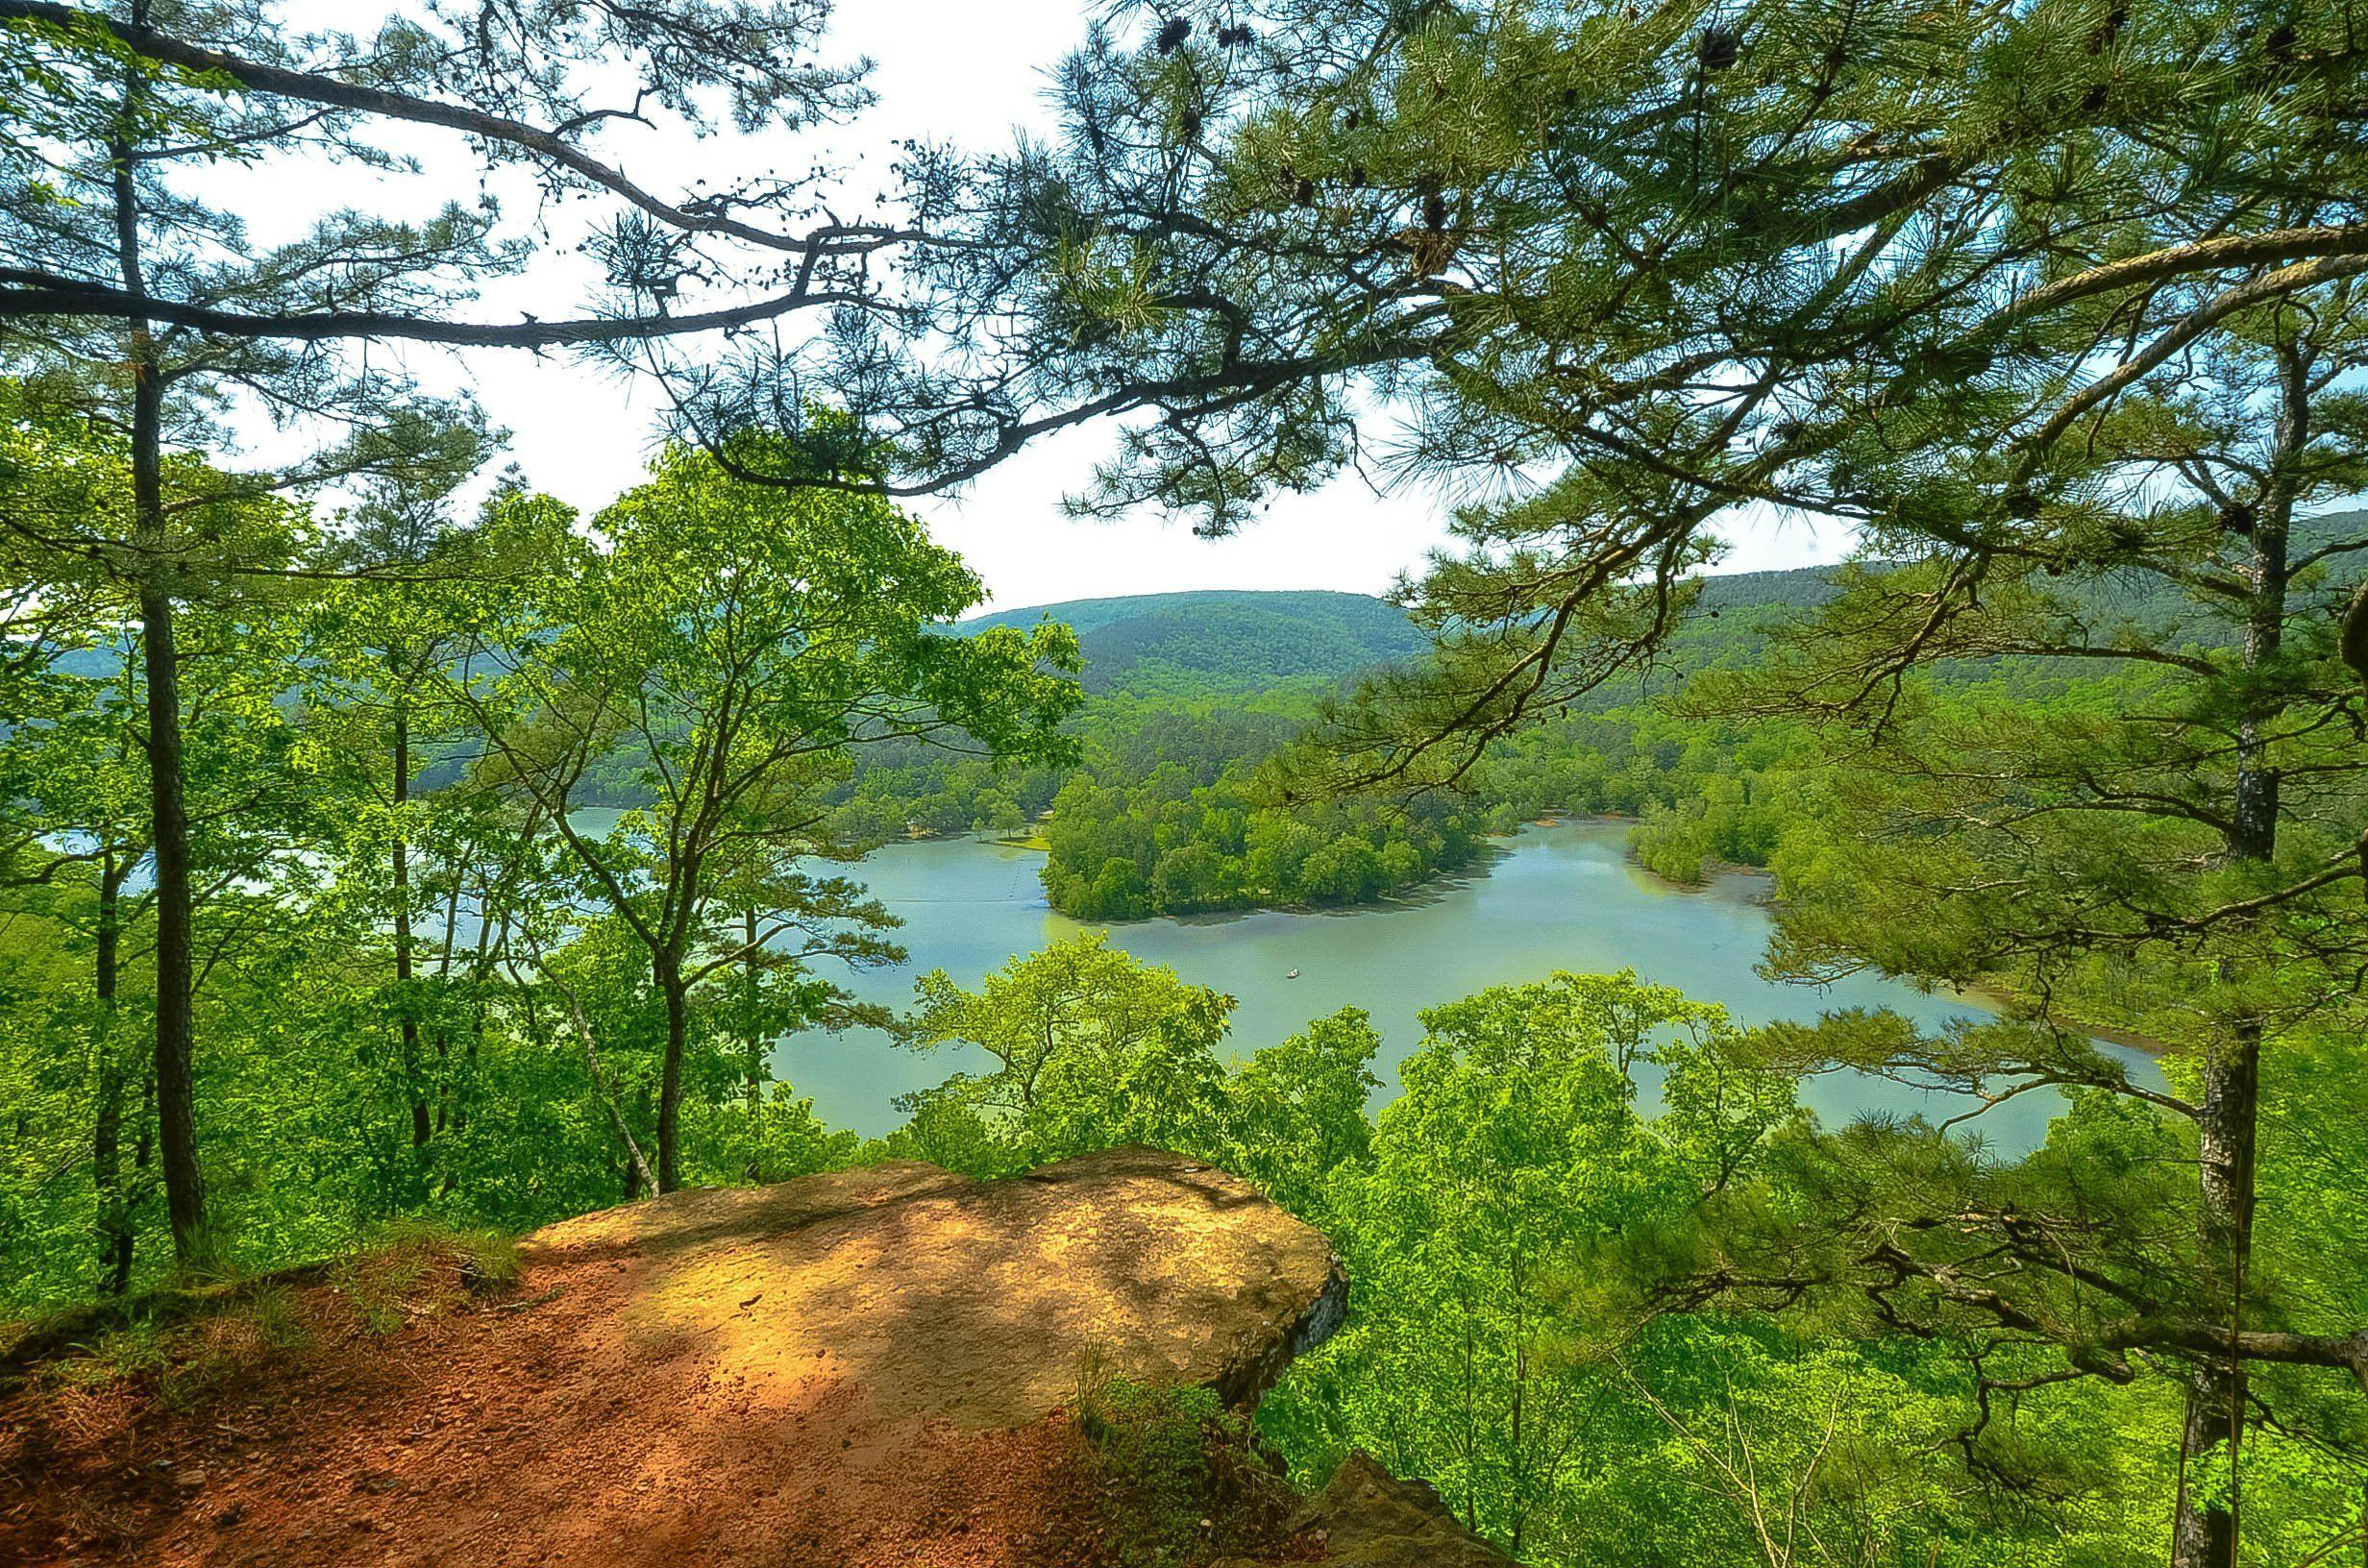 Arkansas river hills trees landscape wallpaper | 2464x1632 ...